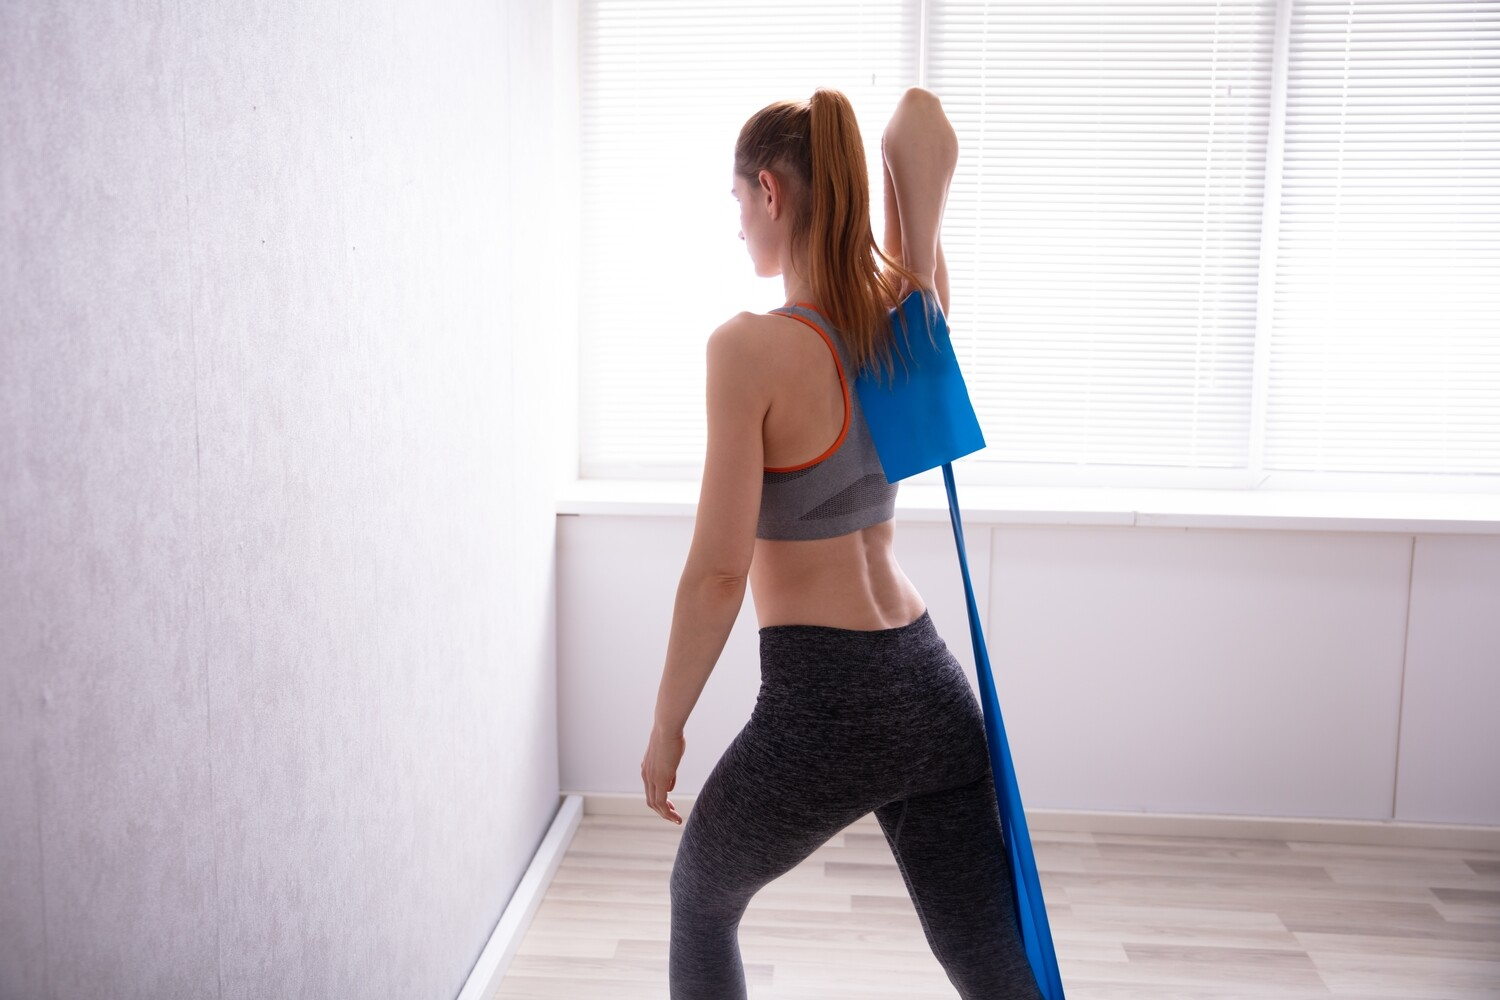 Resistance Band - Home Exercise Program